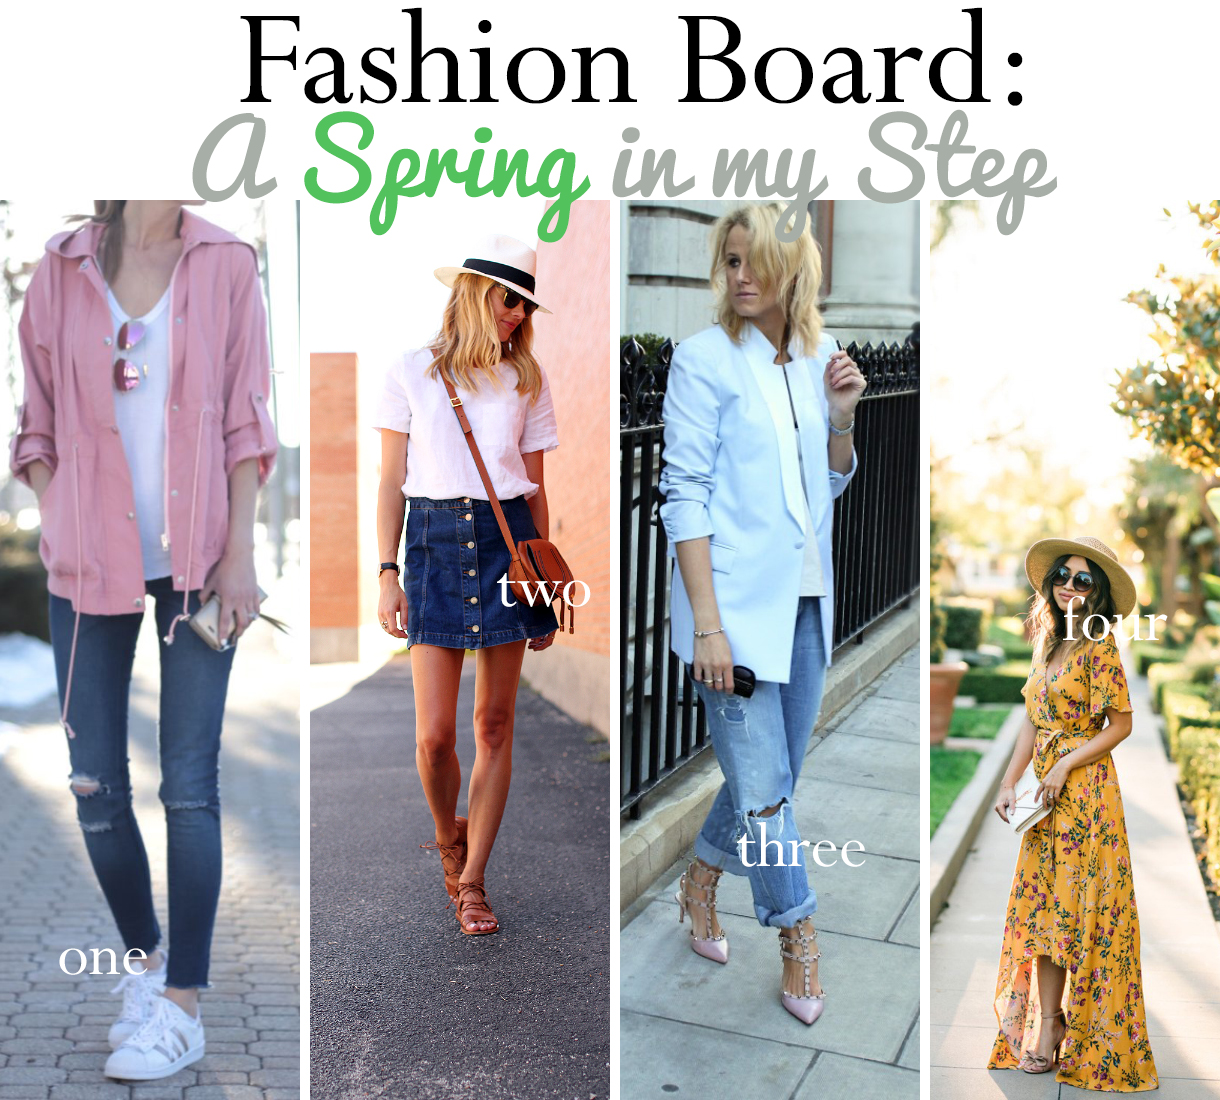 Celebrating all the spring outfits I'm looking forward to rockin'!